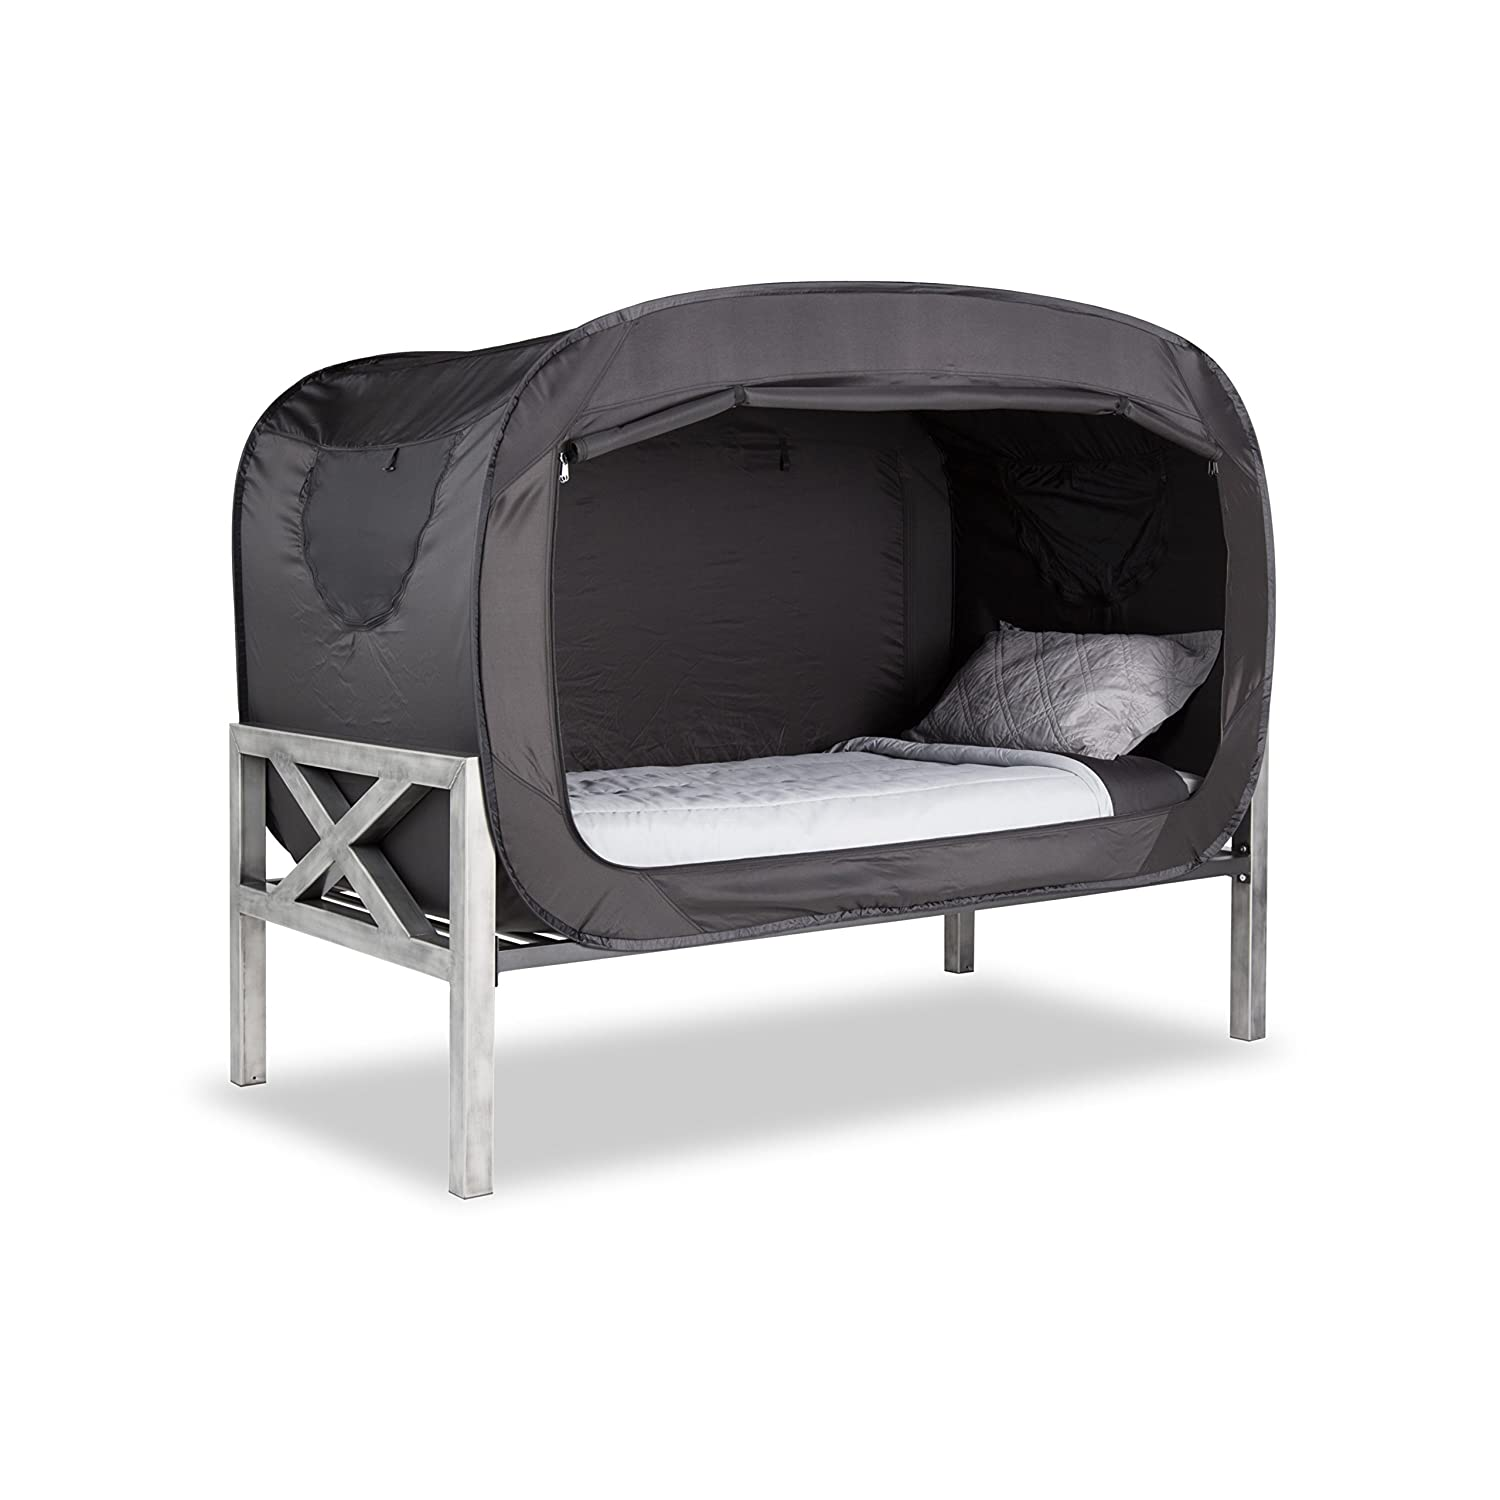 sc 1 st  Amazon UK & Privacy Pop Bed Tent (Full) - BLACK: Amazon.co.uk: Kitchen u0026 Home